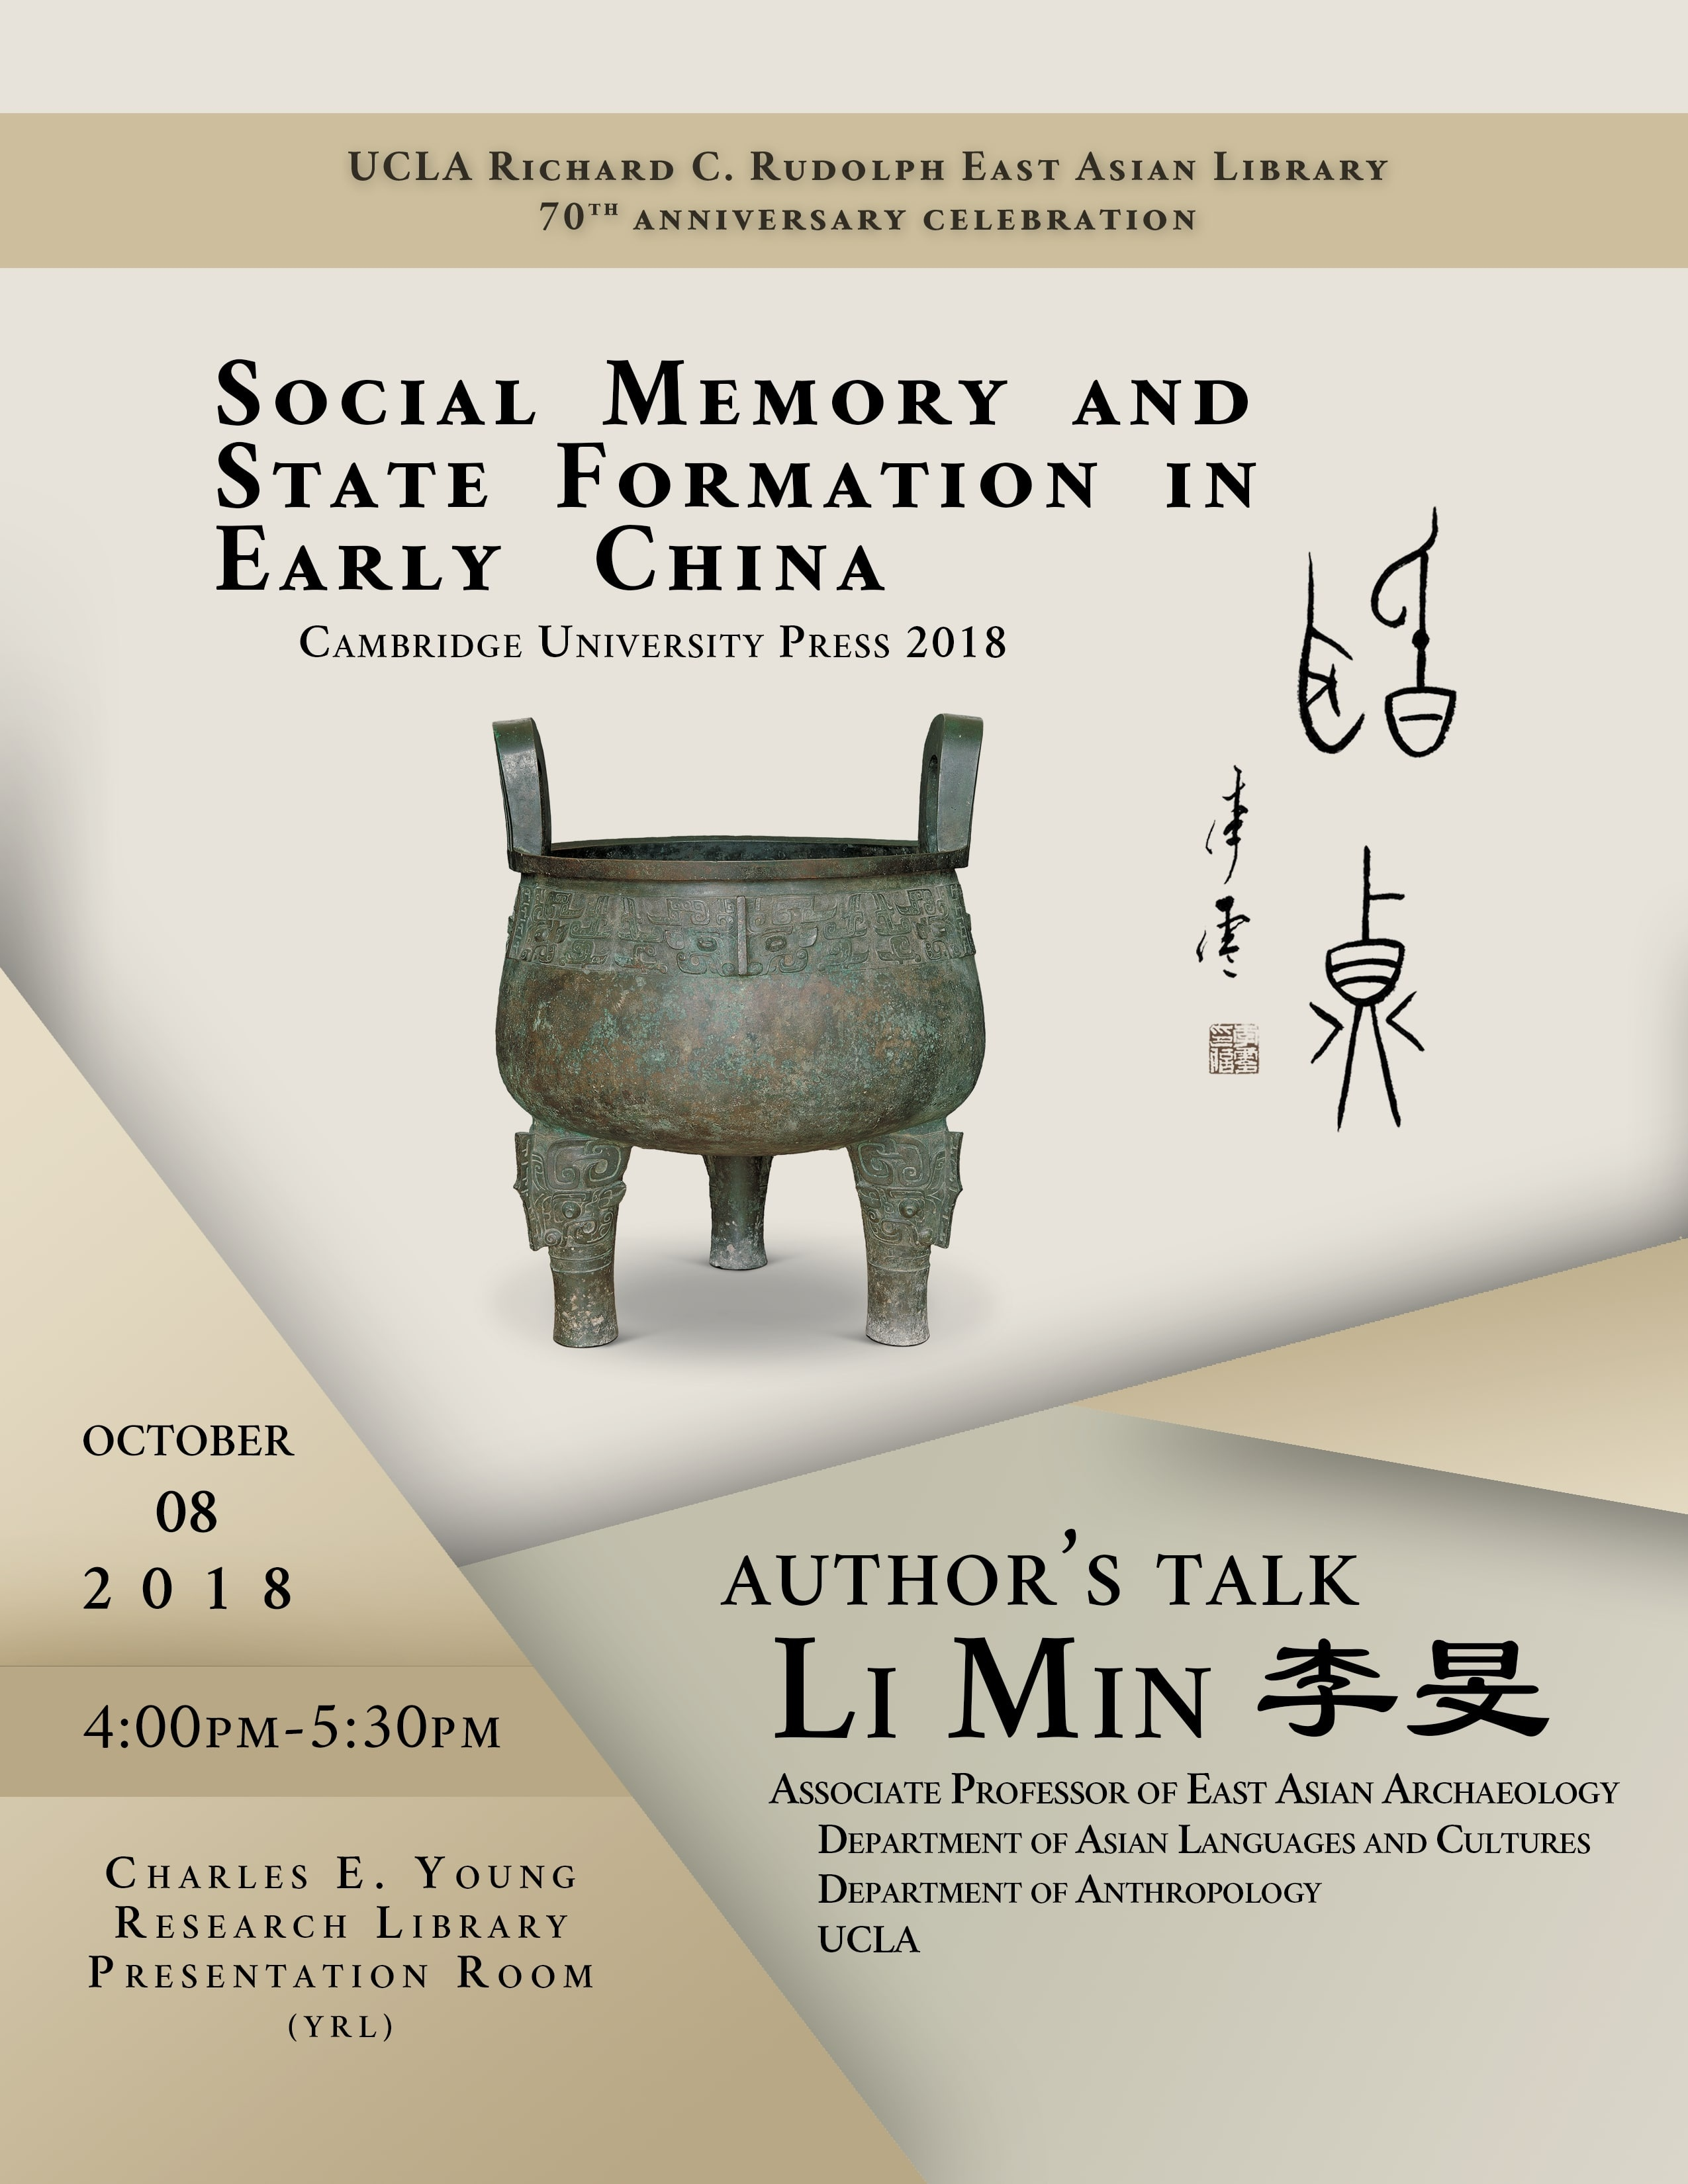 Social Memory and State Formation in Early China